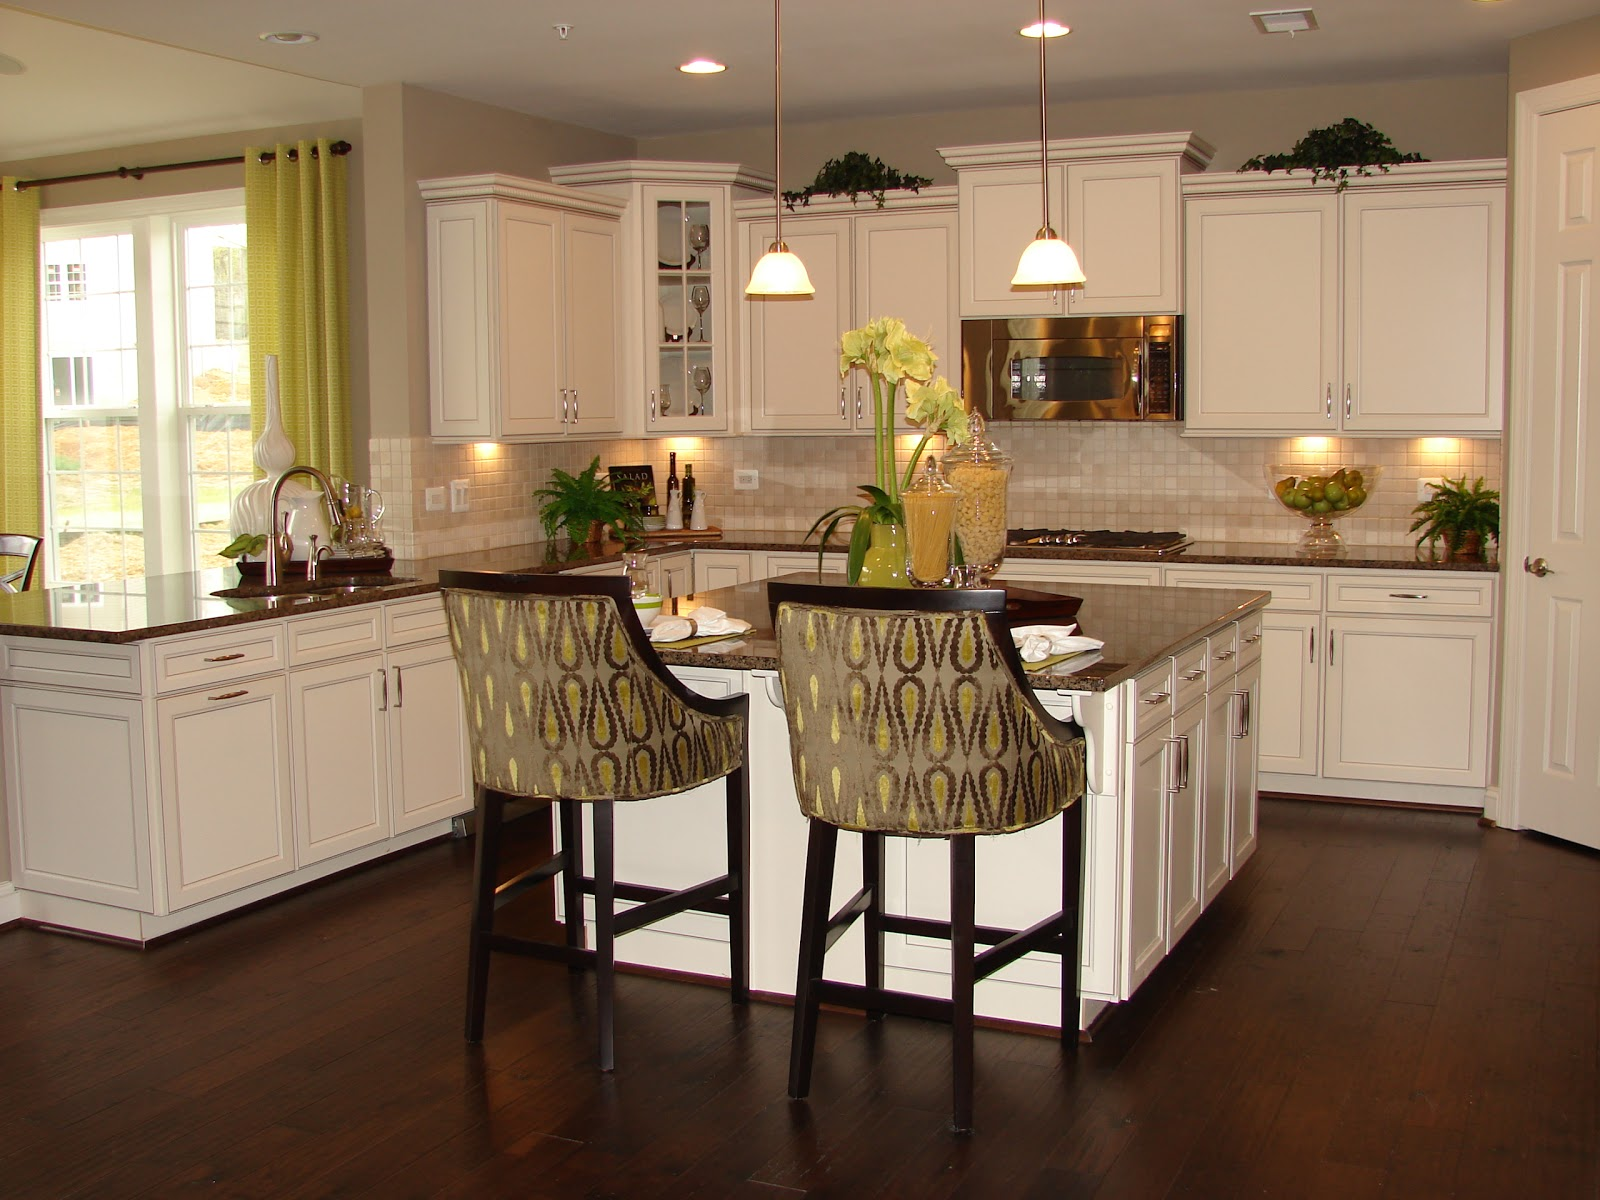 kitchens in new homes kitchen island with pull out table building a ryan home avalon april 2012